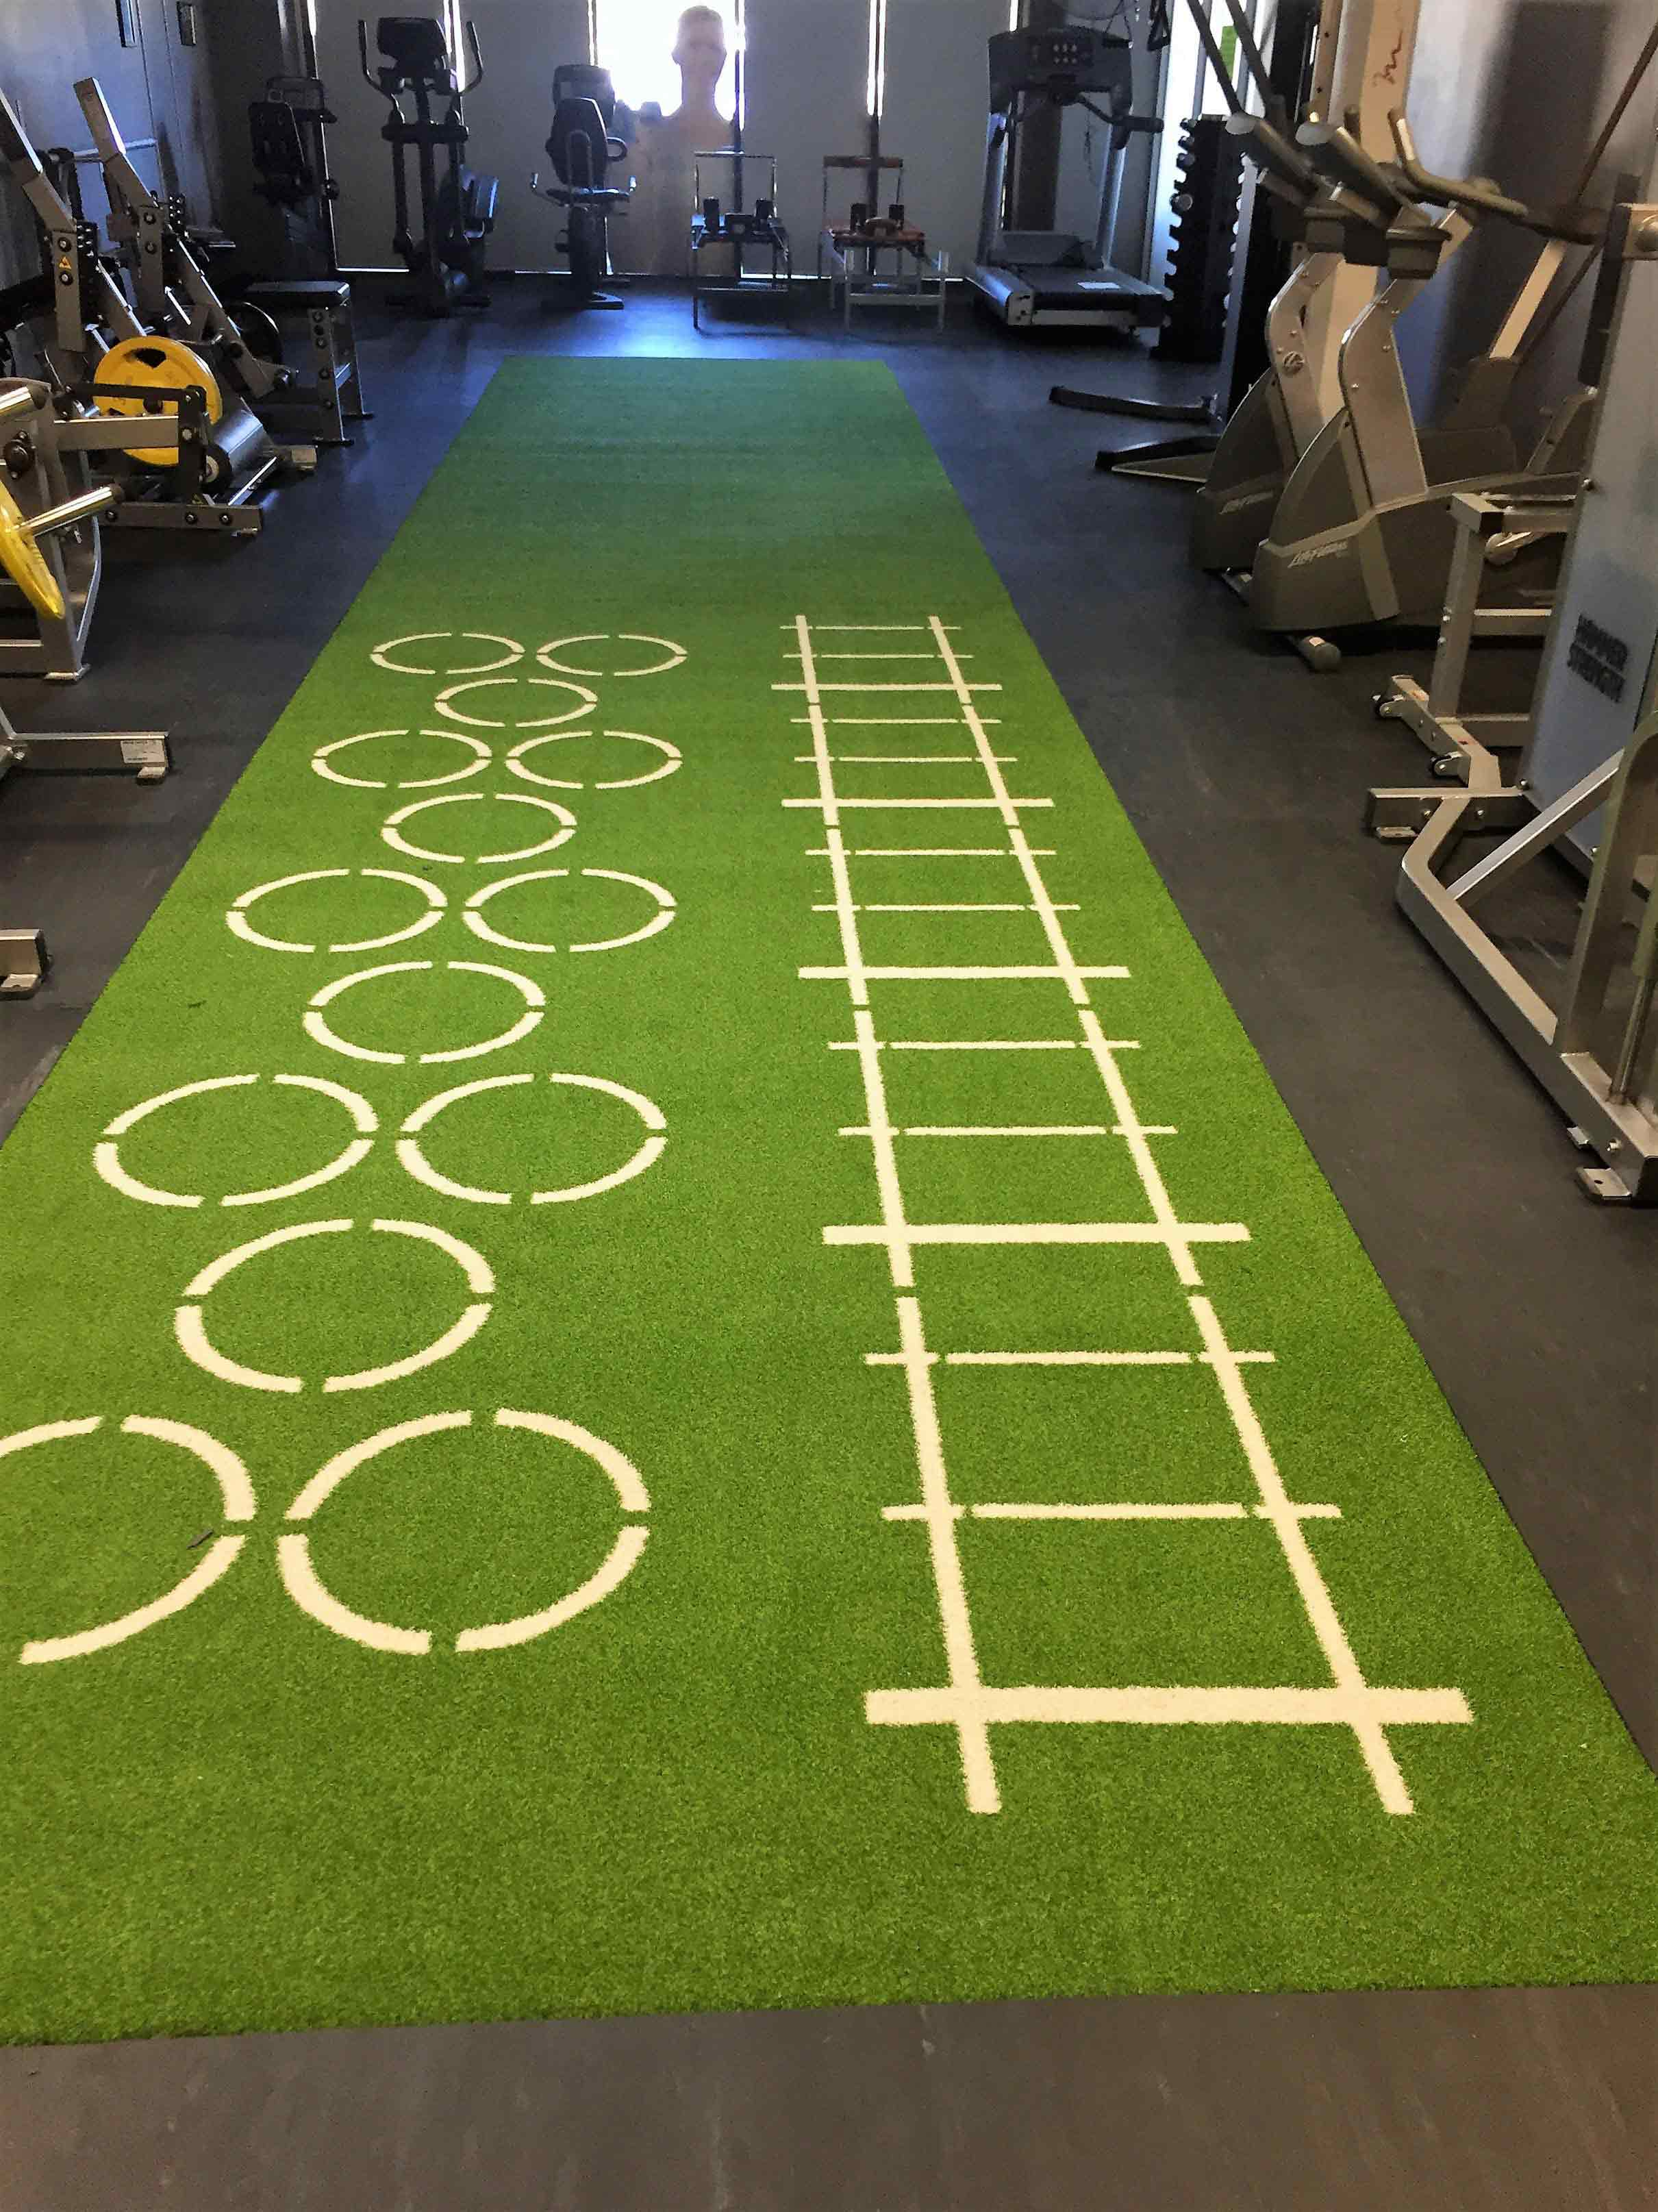 55 Floorz Carpet Installations Gold Coast Green Carpet on Gym